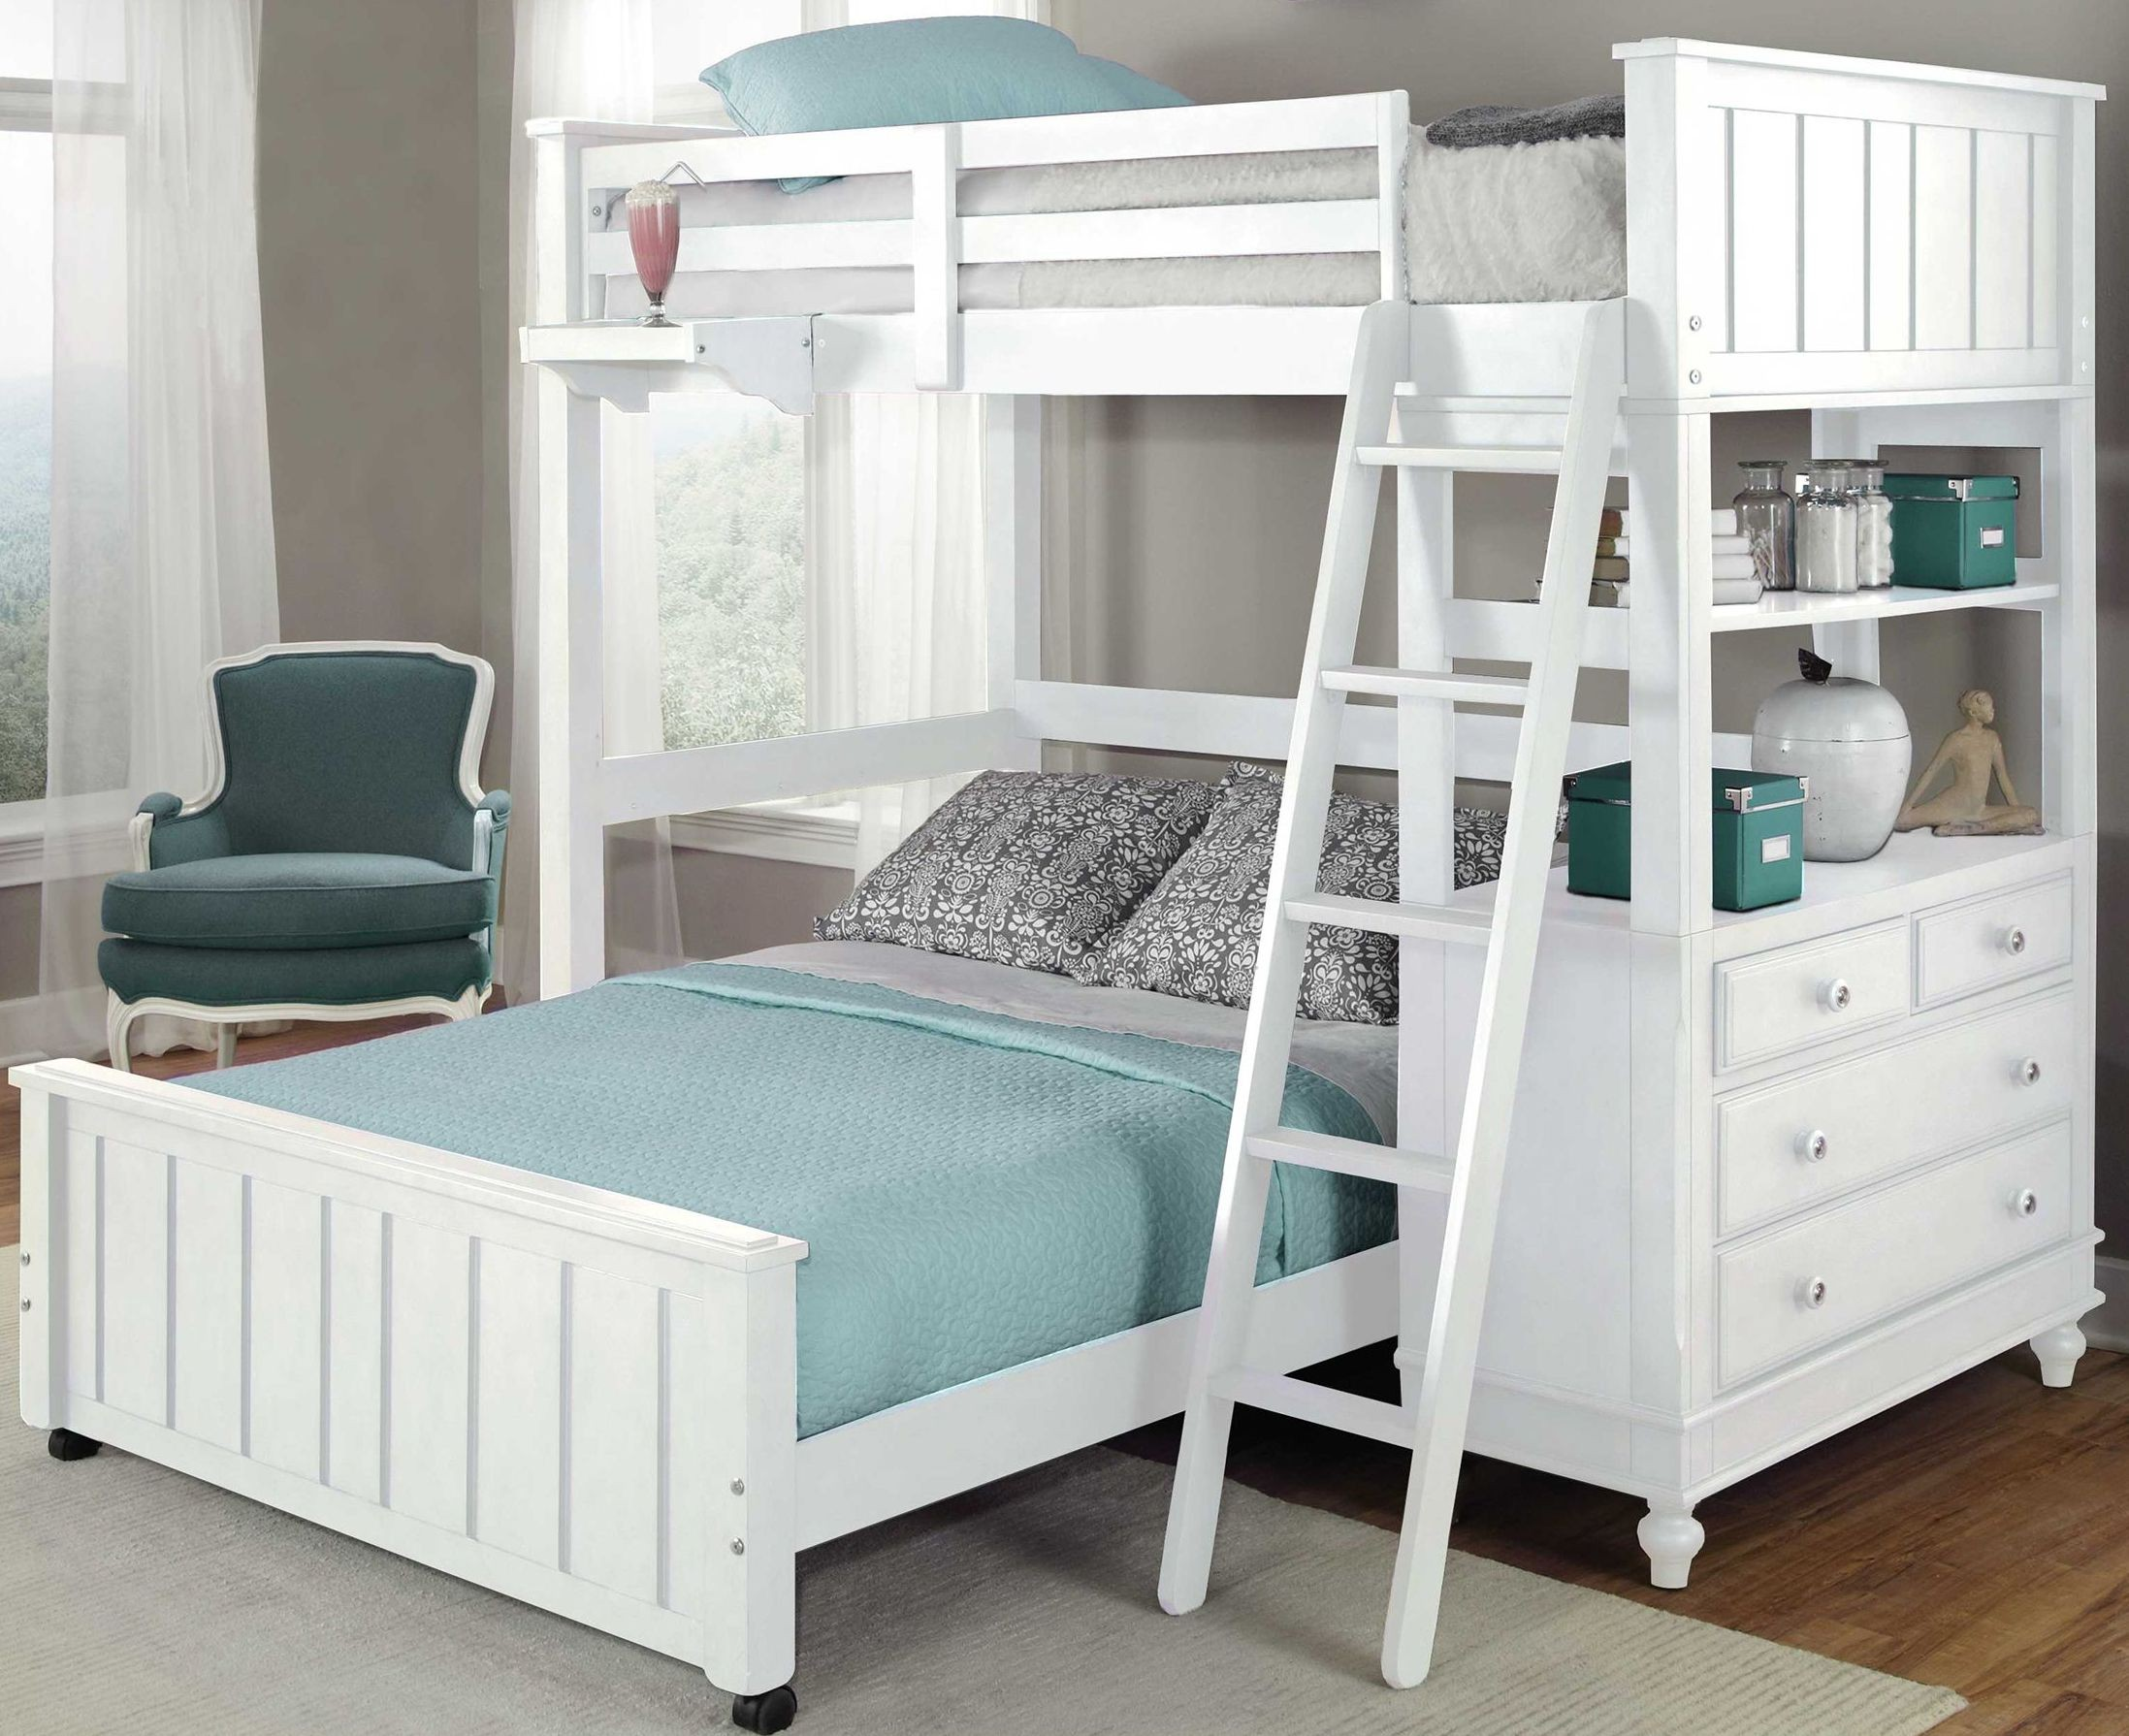 lake house white twin loft bed with full lower bed from ne kids coleman furniture. Black Bedroom Furniture Sets. Home Design Ideas